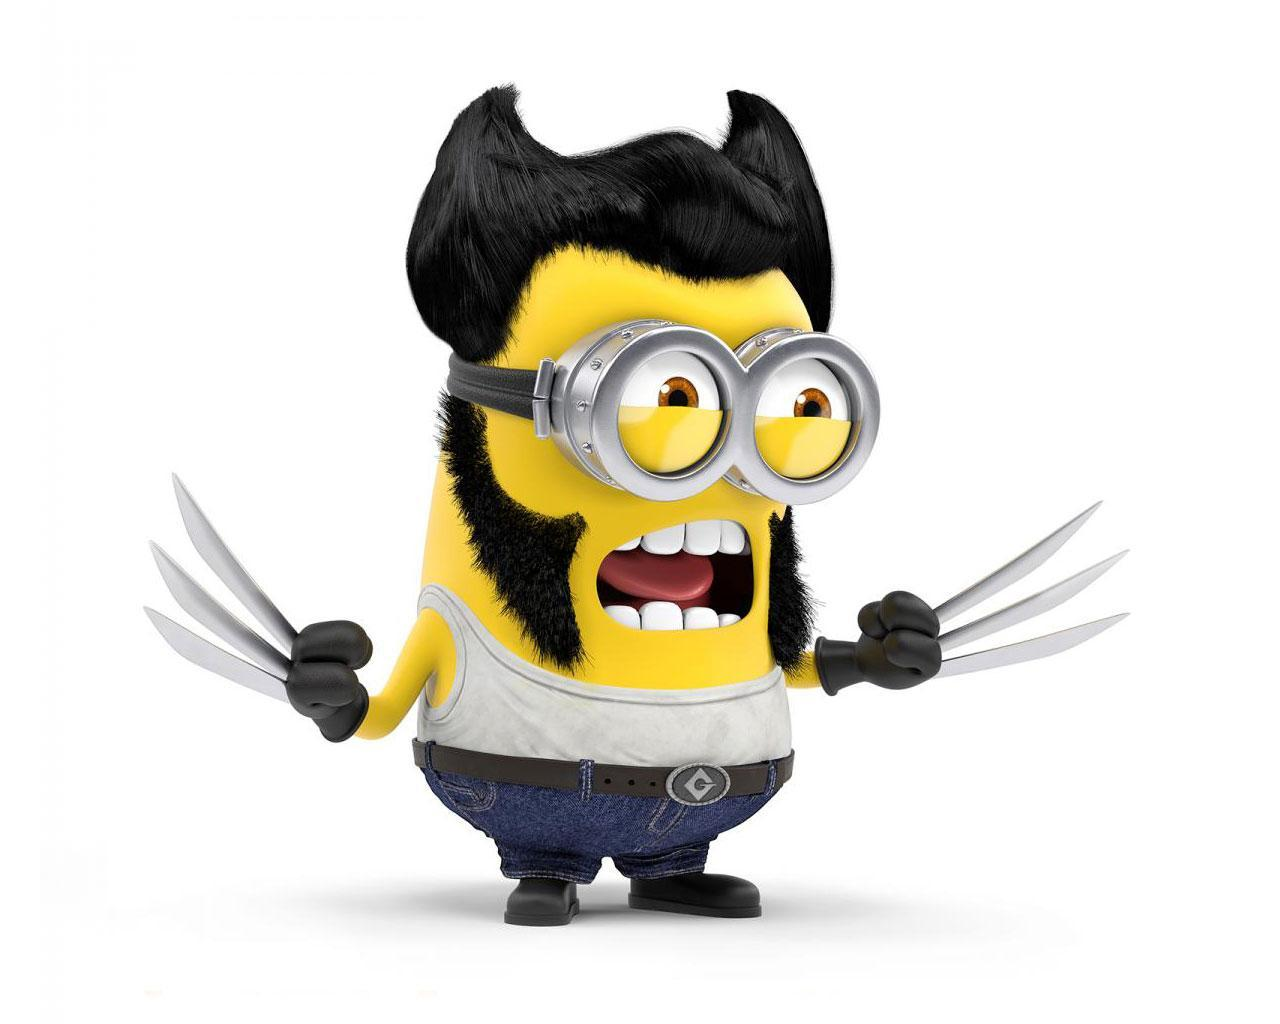 X Minions Wallpapers For Android Apk Download